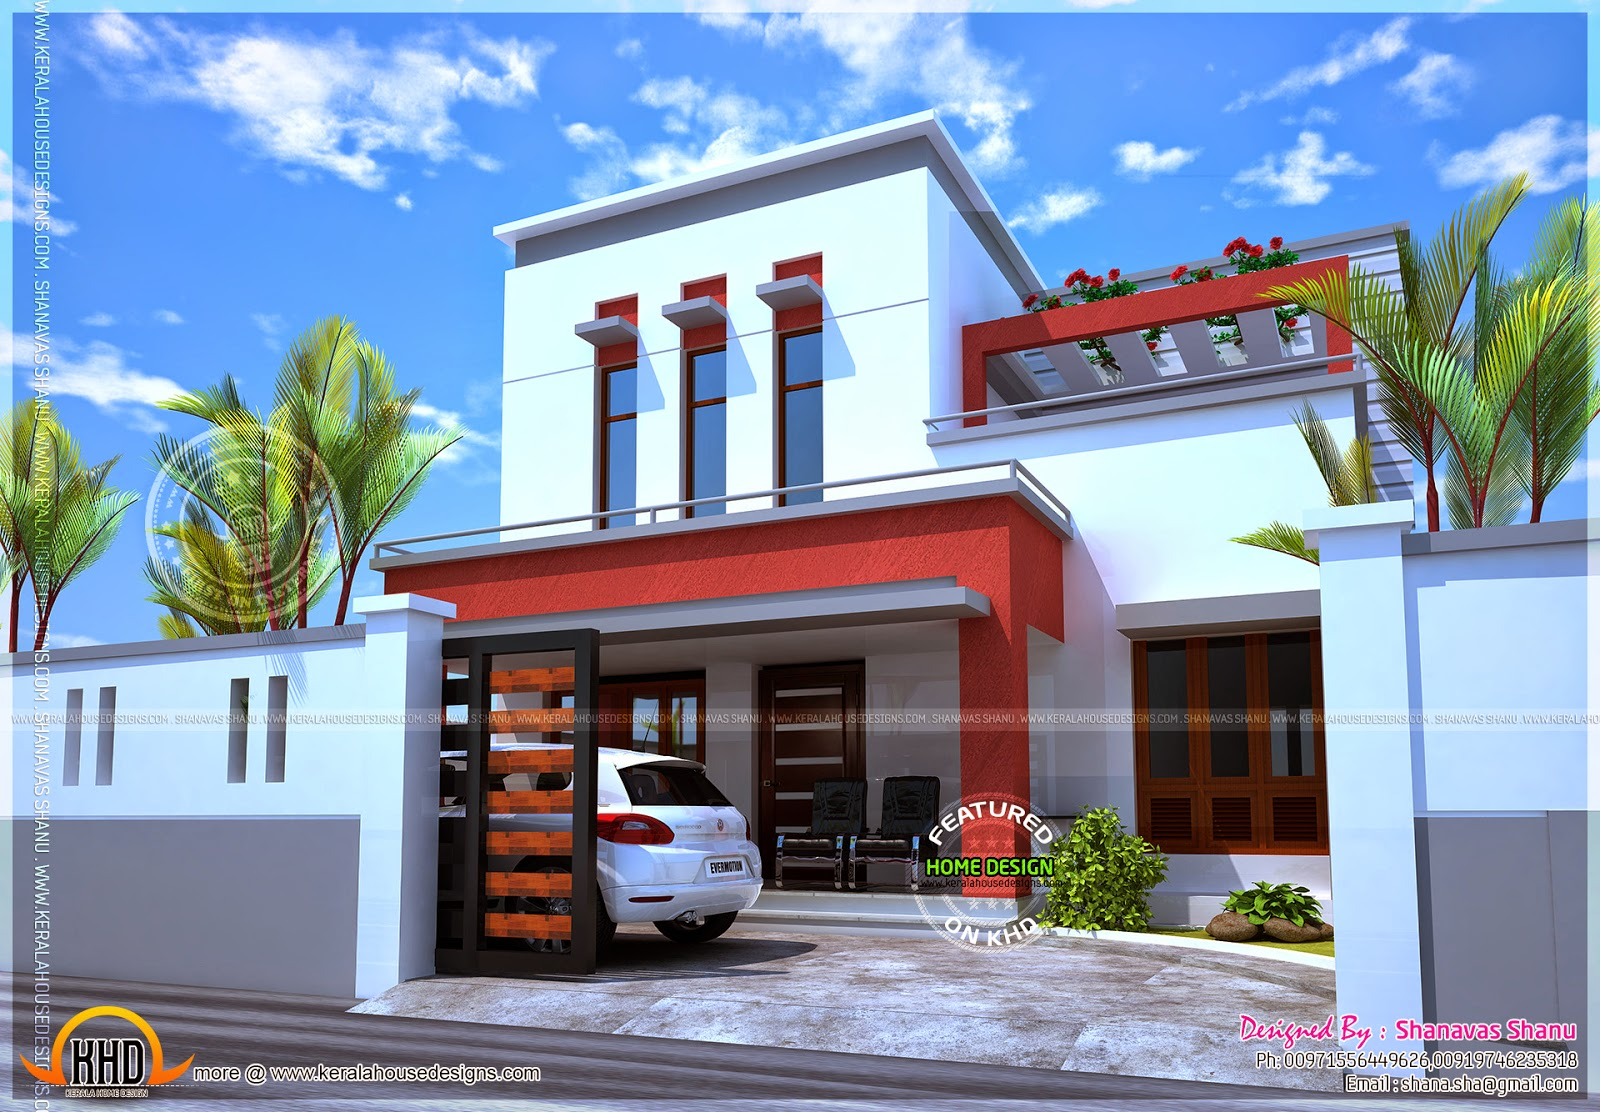 Beautiful house flat roof kerala home design and floor plans for Beautiful modern homes